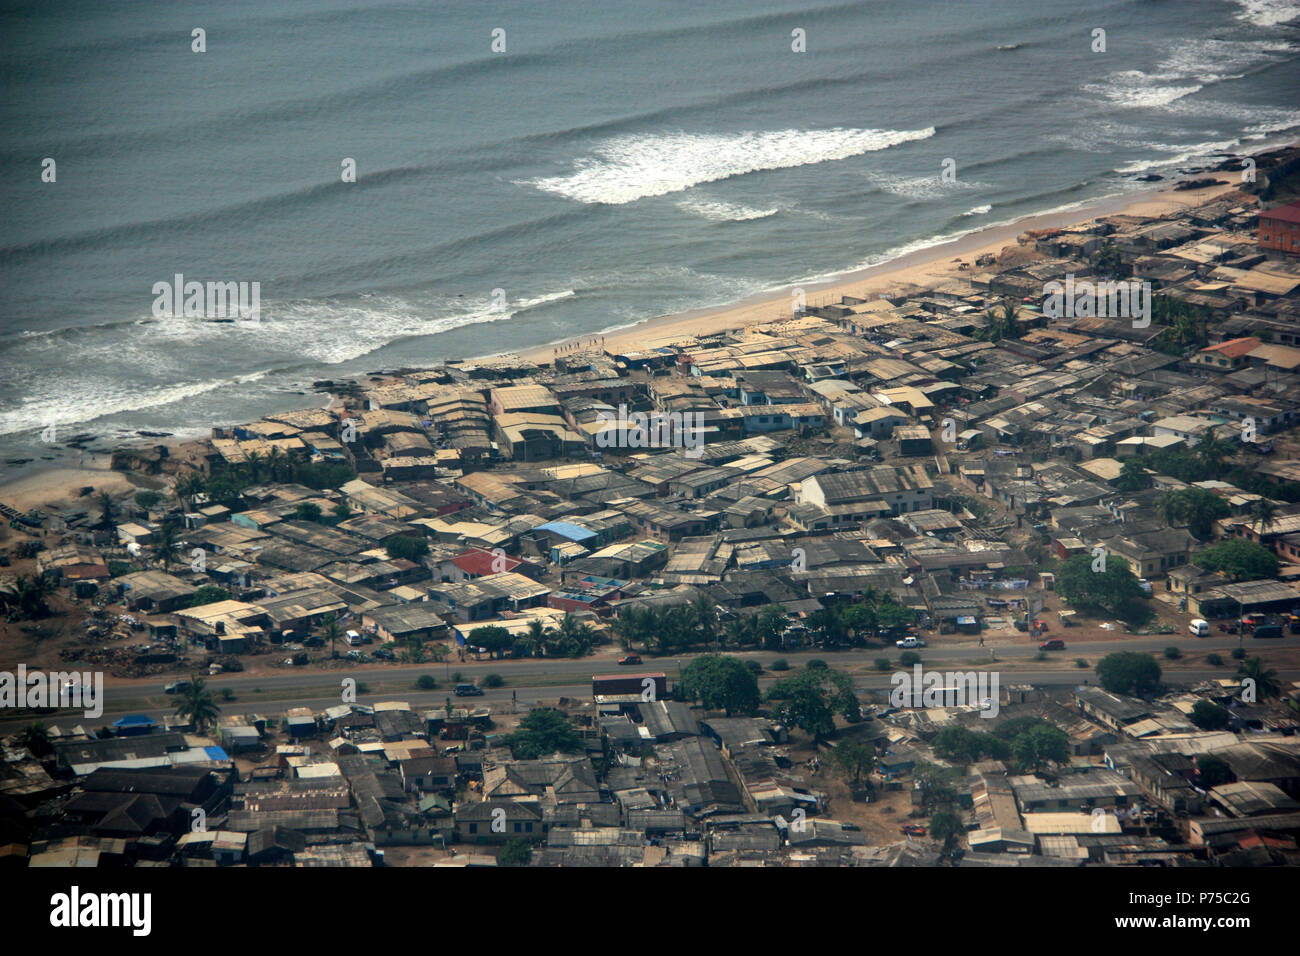 Aerial View of the waterfront of Accra, Ghana - Stock Image